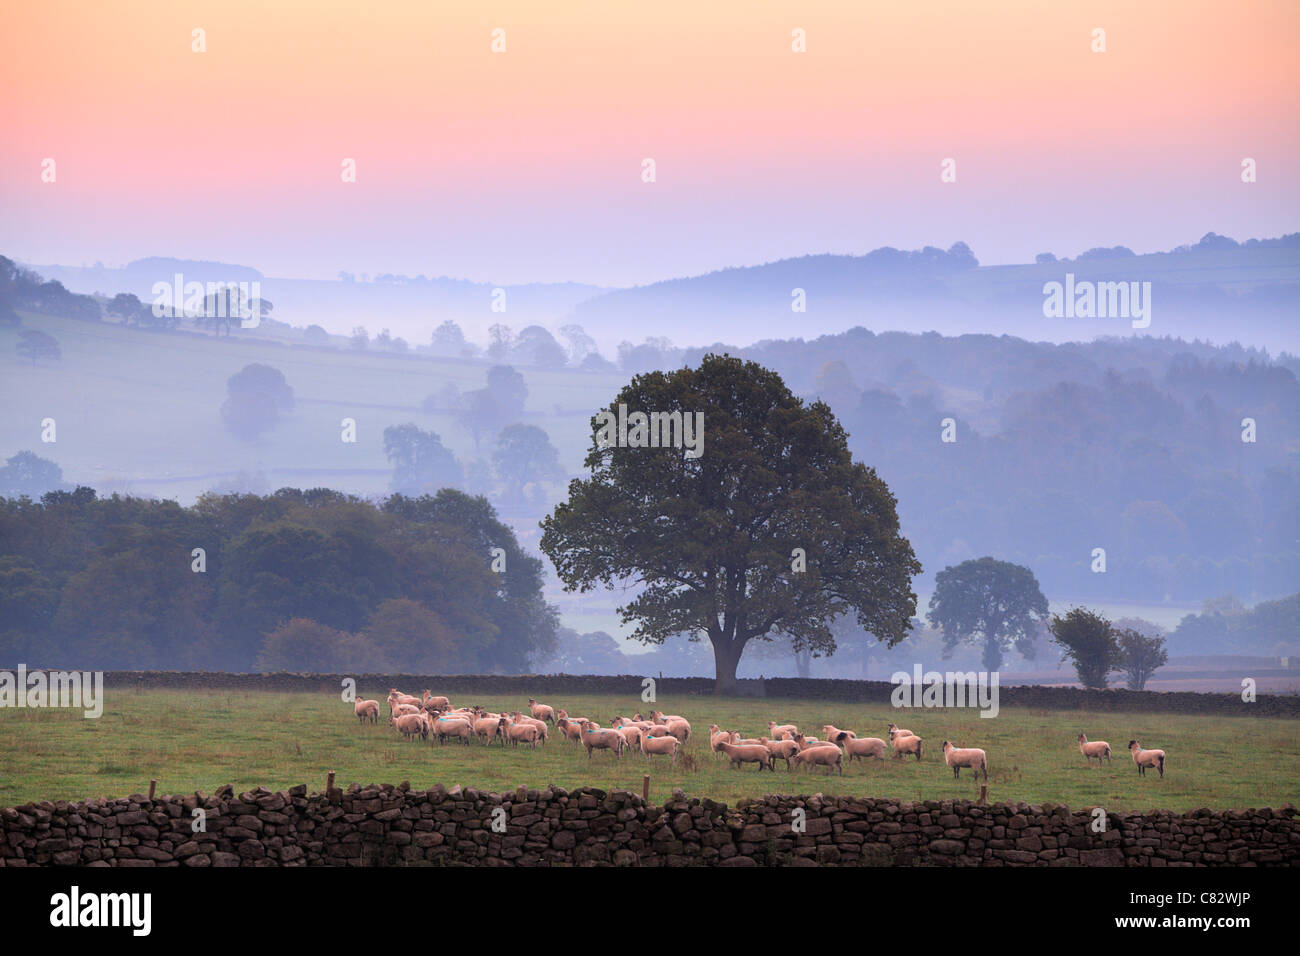 Yorkshire sheep on a misty morning in Nidderdale as seen from Dacre, Yorkshire, England - Stock Image